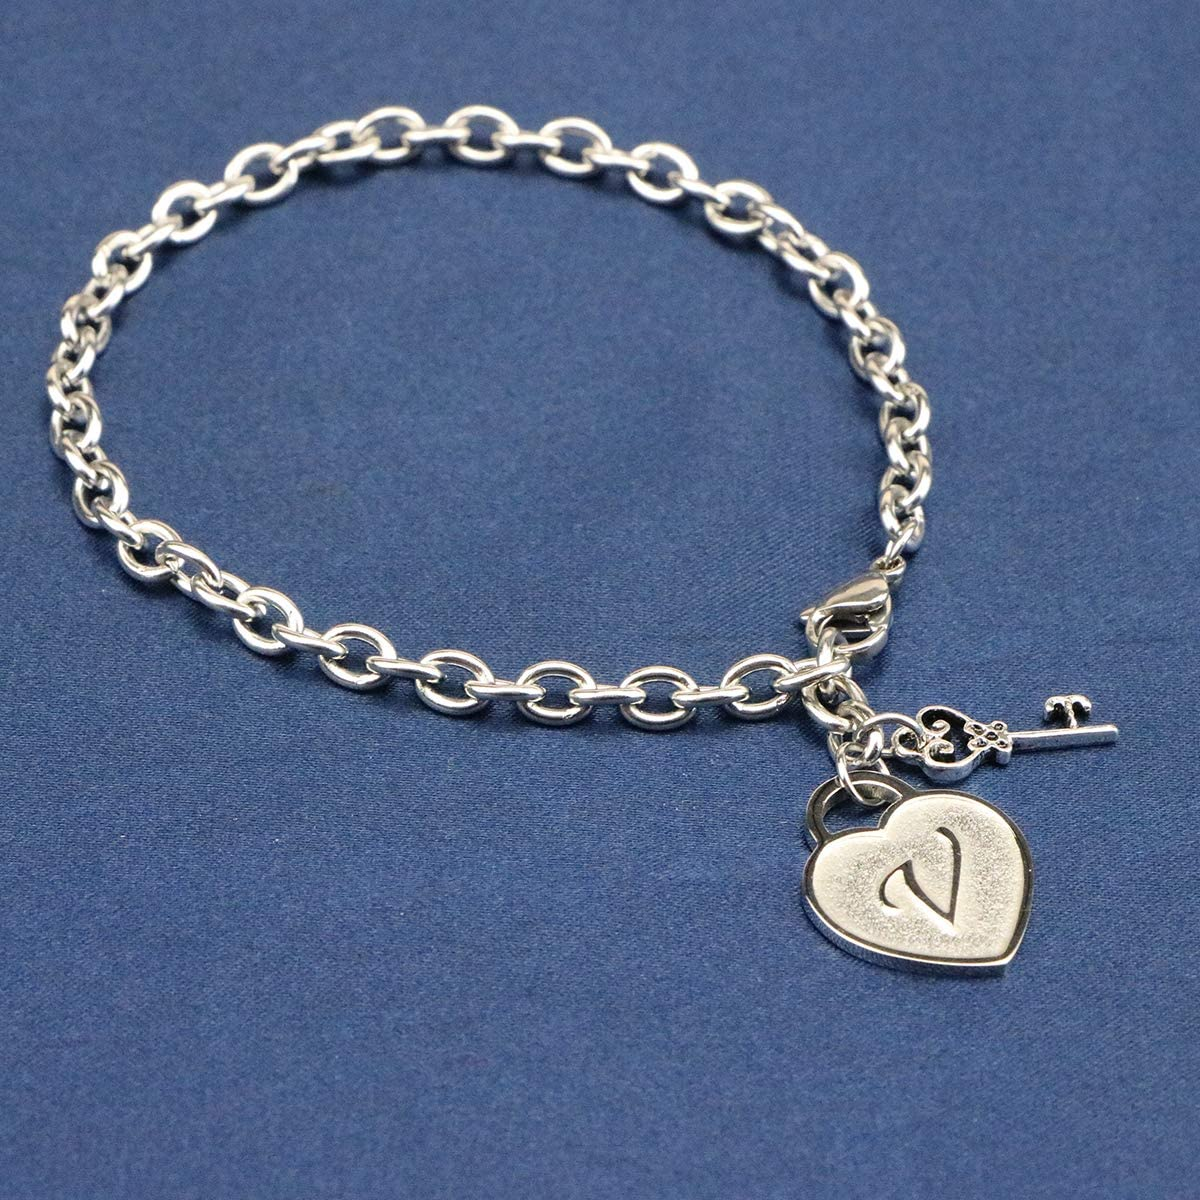 Joycuff Heart Initial Bracelets for Women Letter Charm Chain Stainless Steel Jewelry Birthday for Girl Daugther